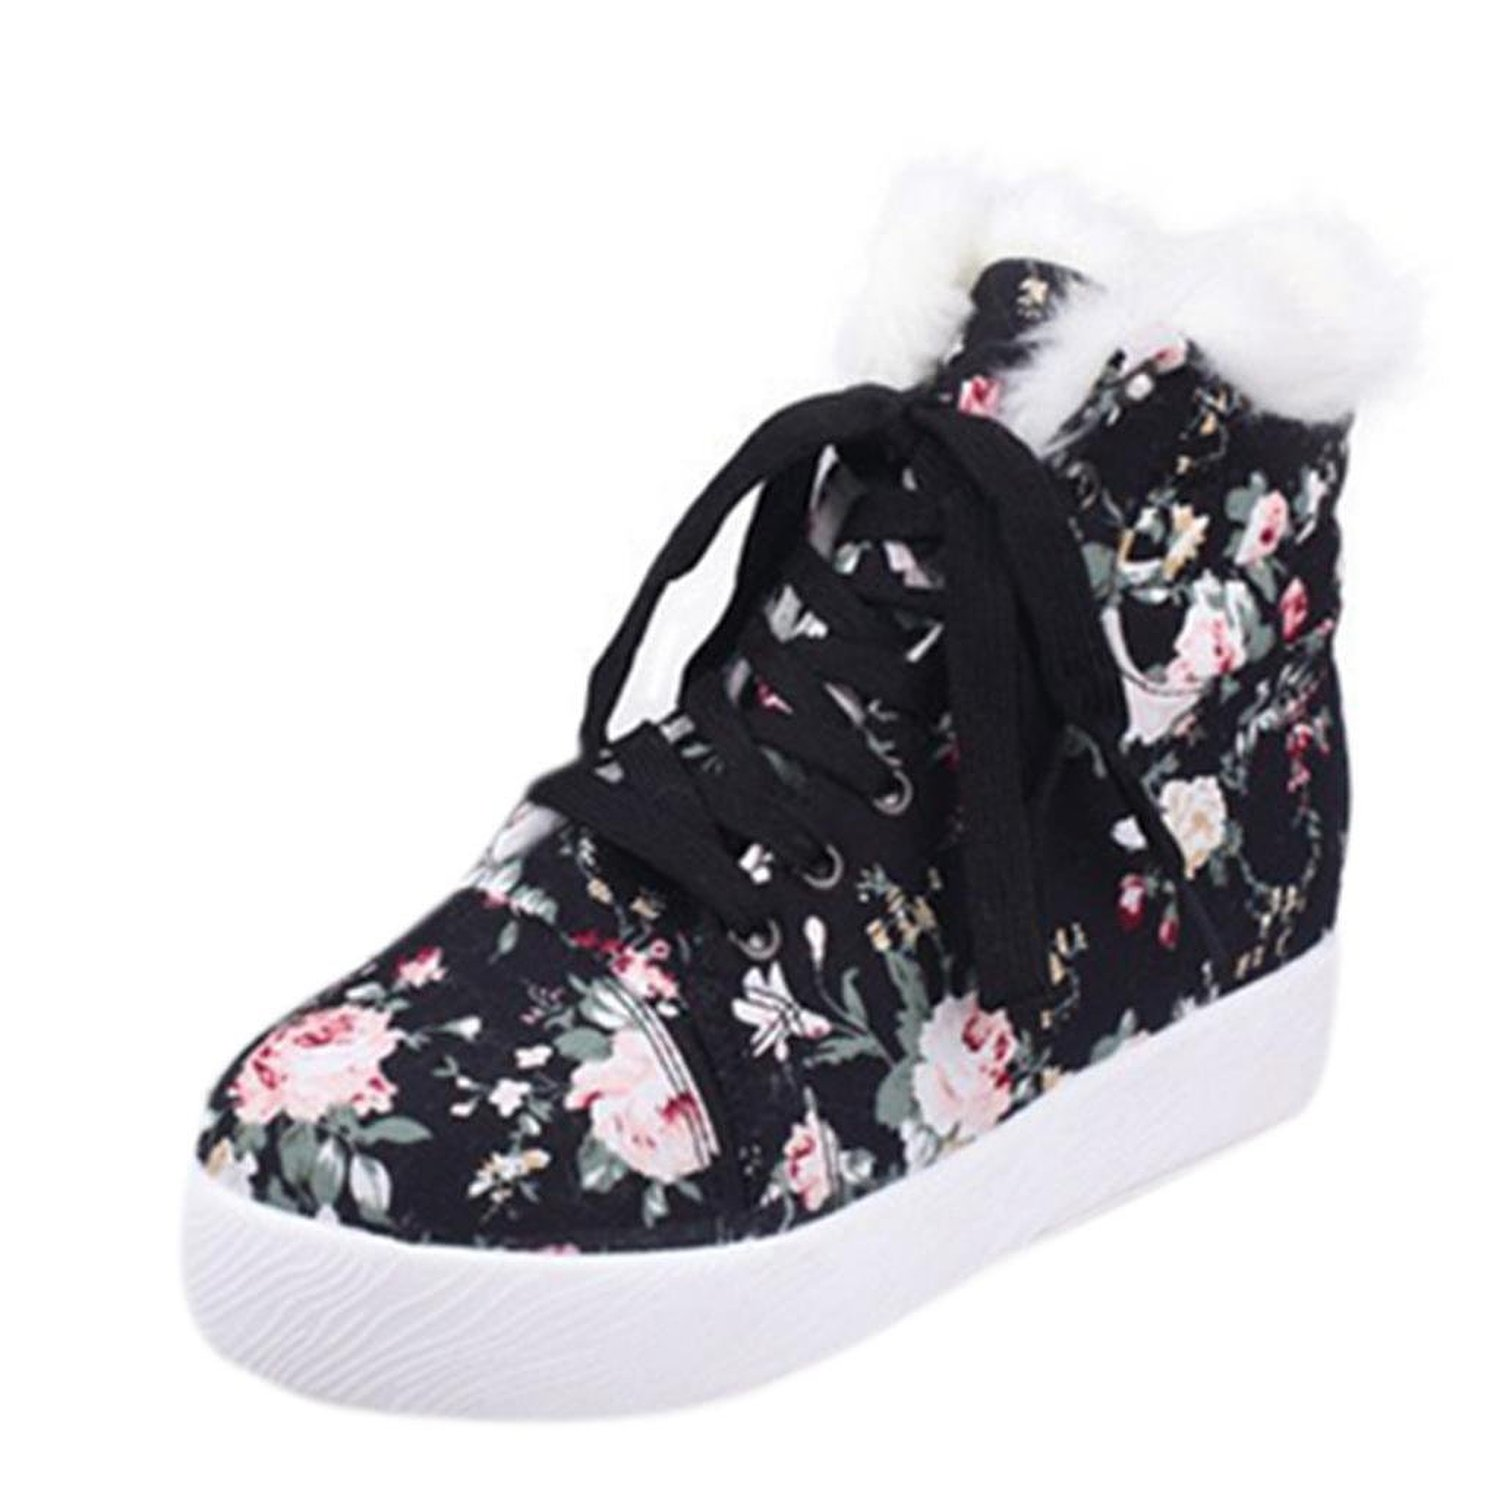 Amazon.com: hee grand women fashion retro flower printed platform wedge ankle boots sneakers: shoes